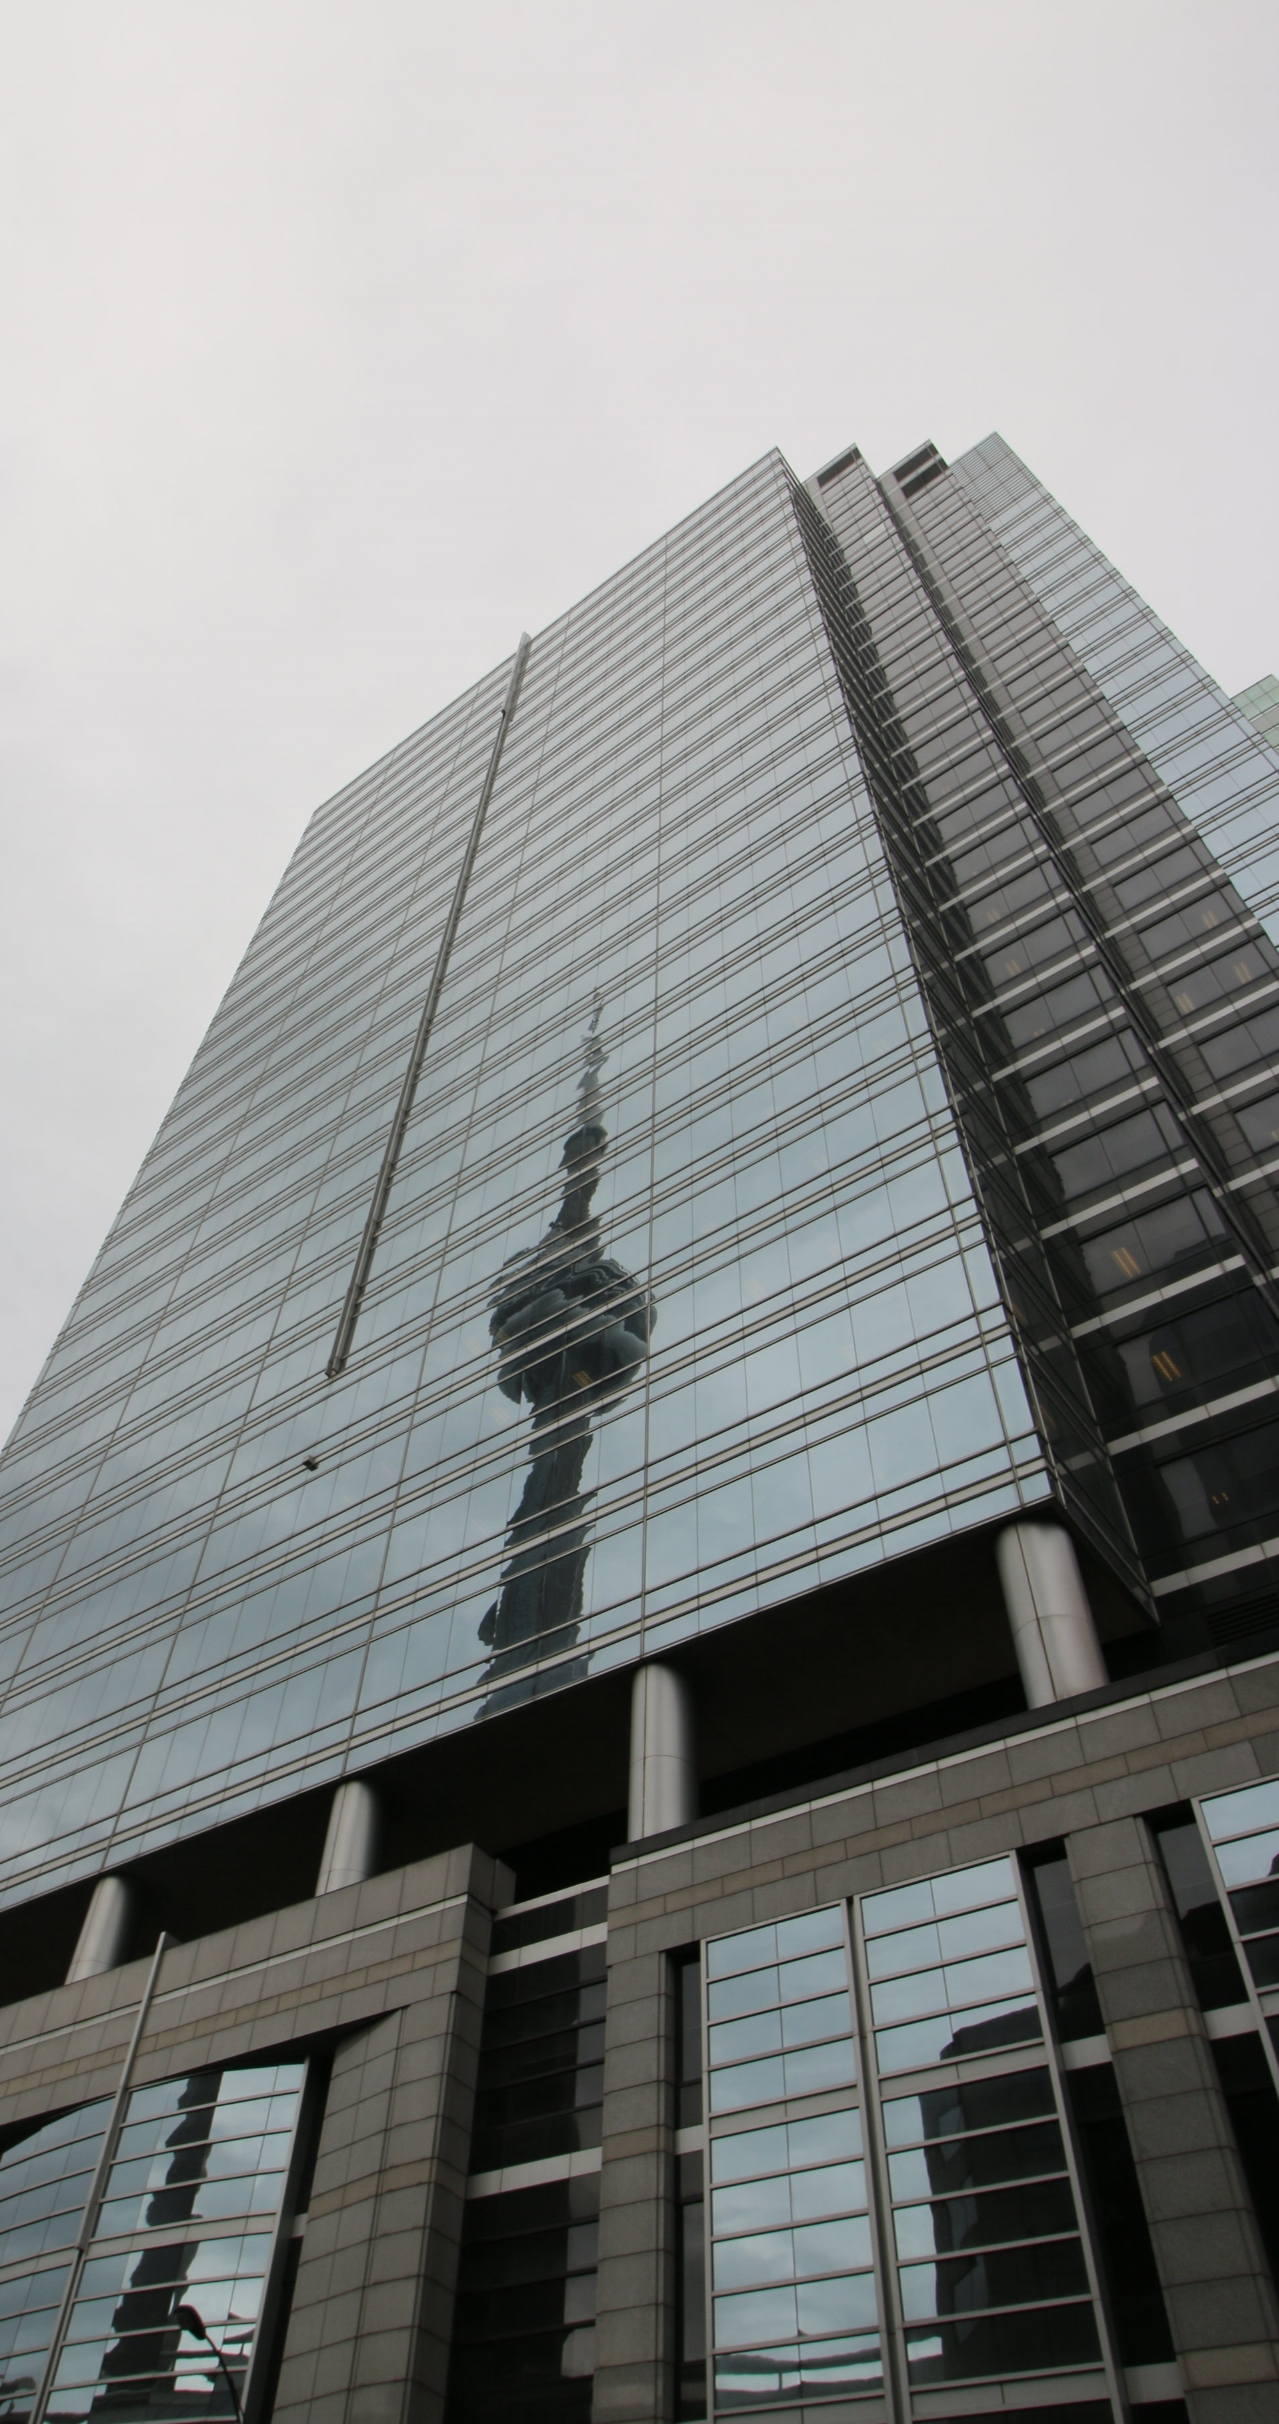 Skyscraper reflecting the CN Tower